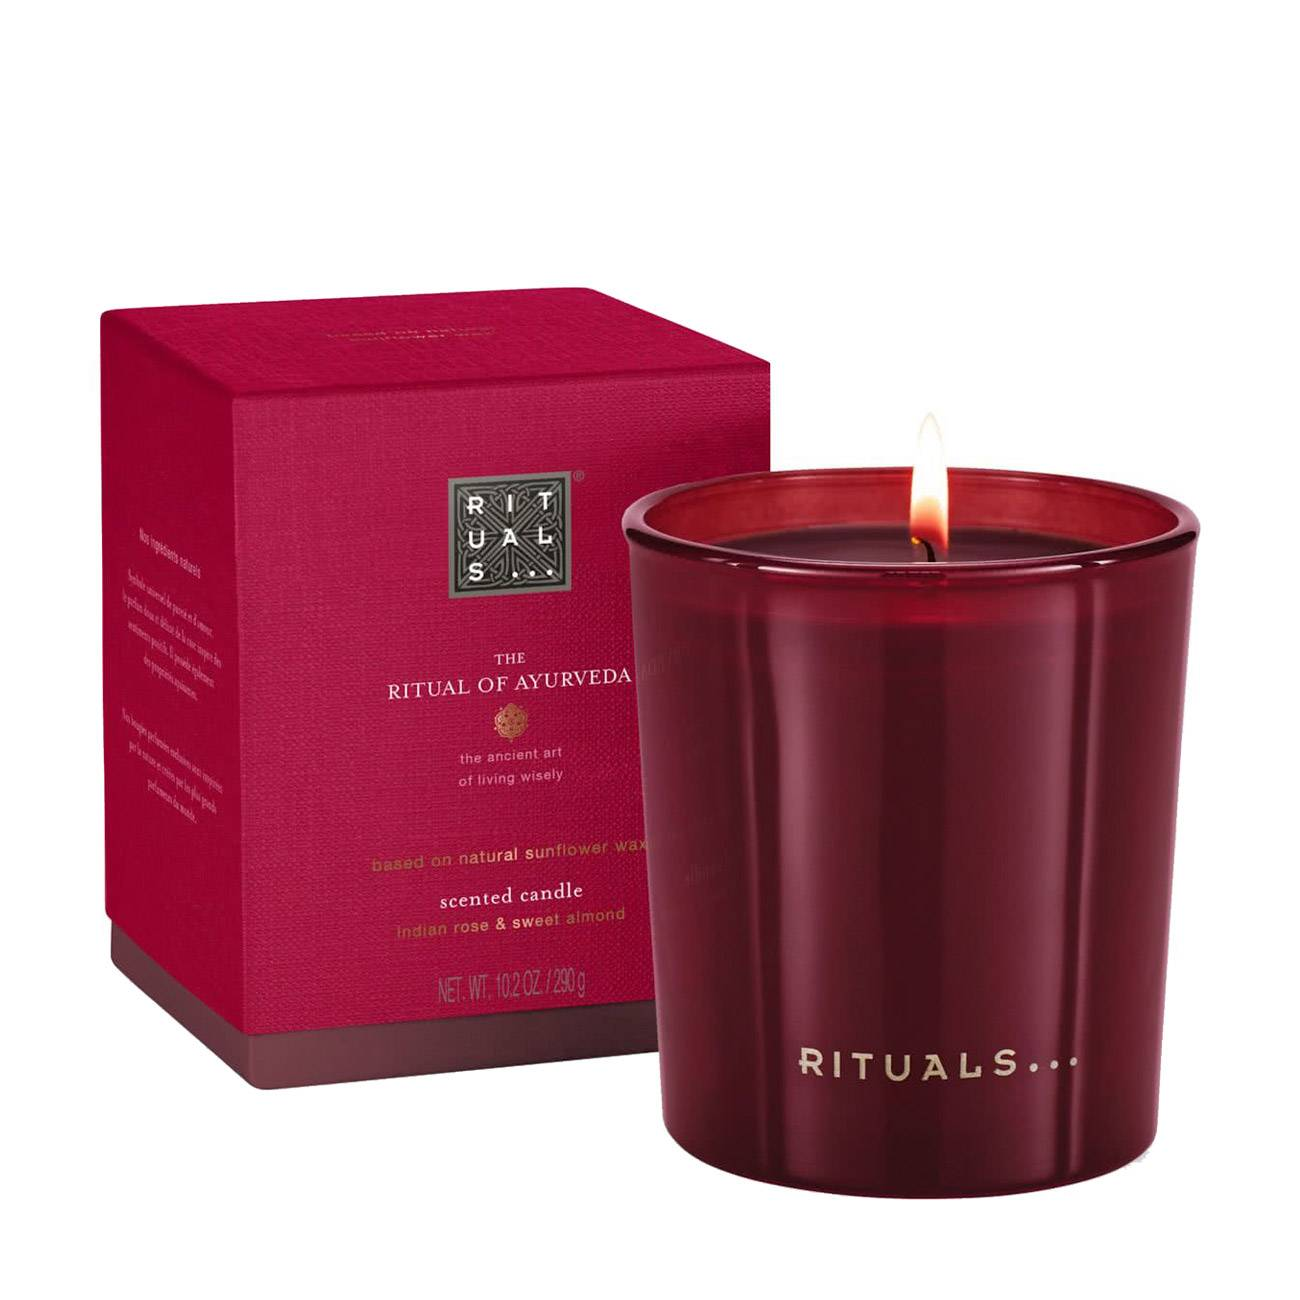 THE RITUAL OF AYURVEDA SCENTED CANDLE 290 Grame imagine produs